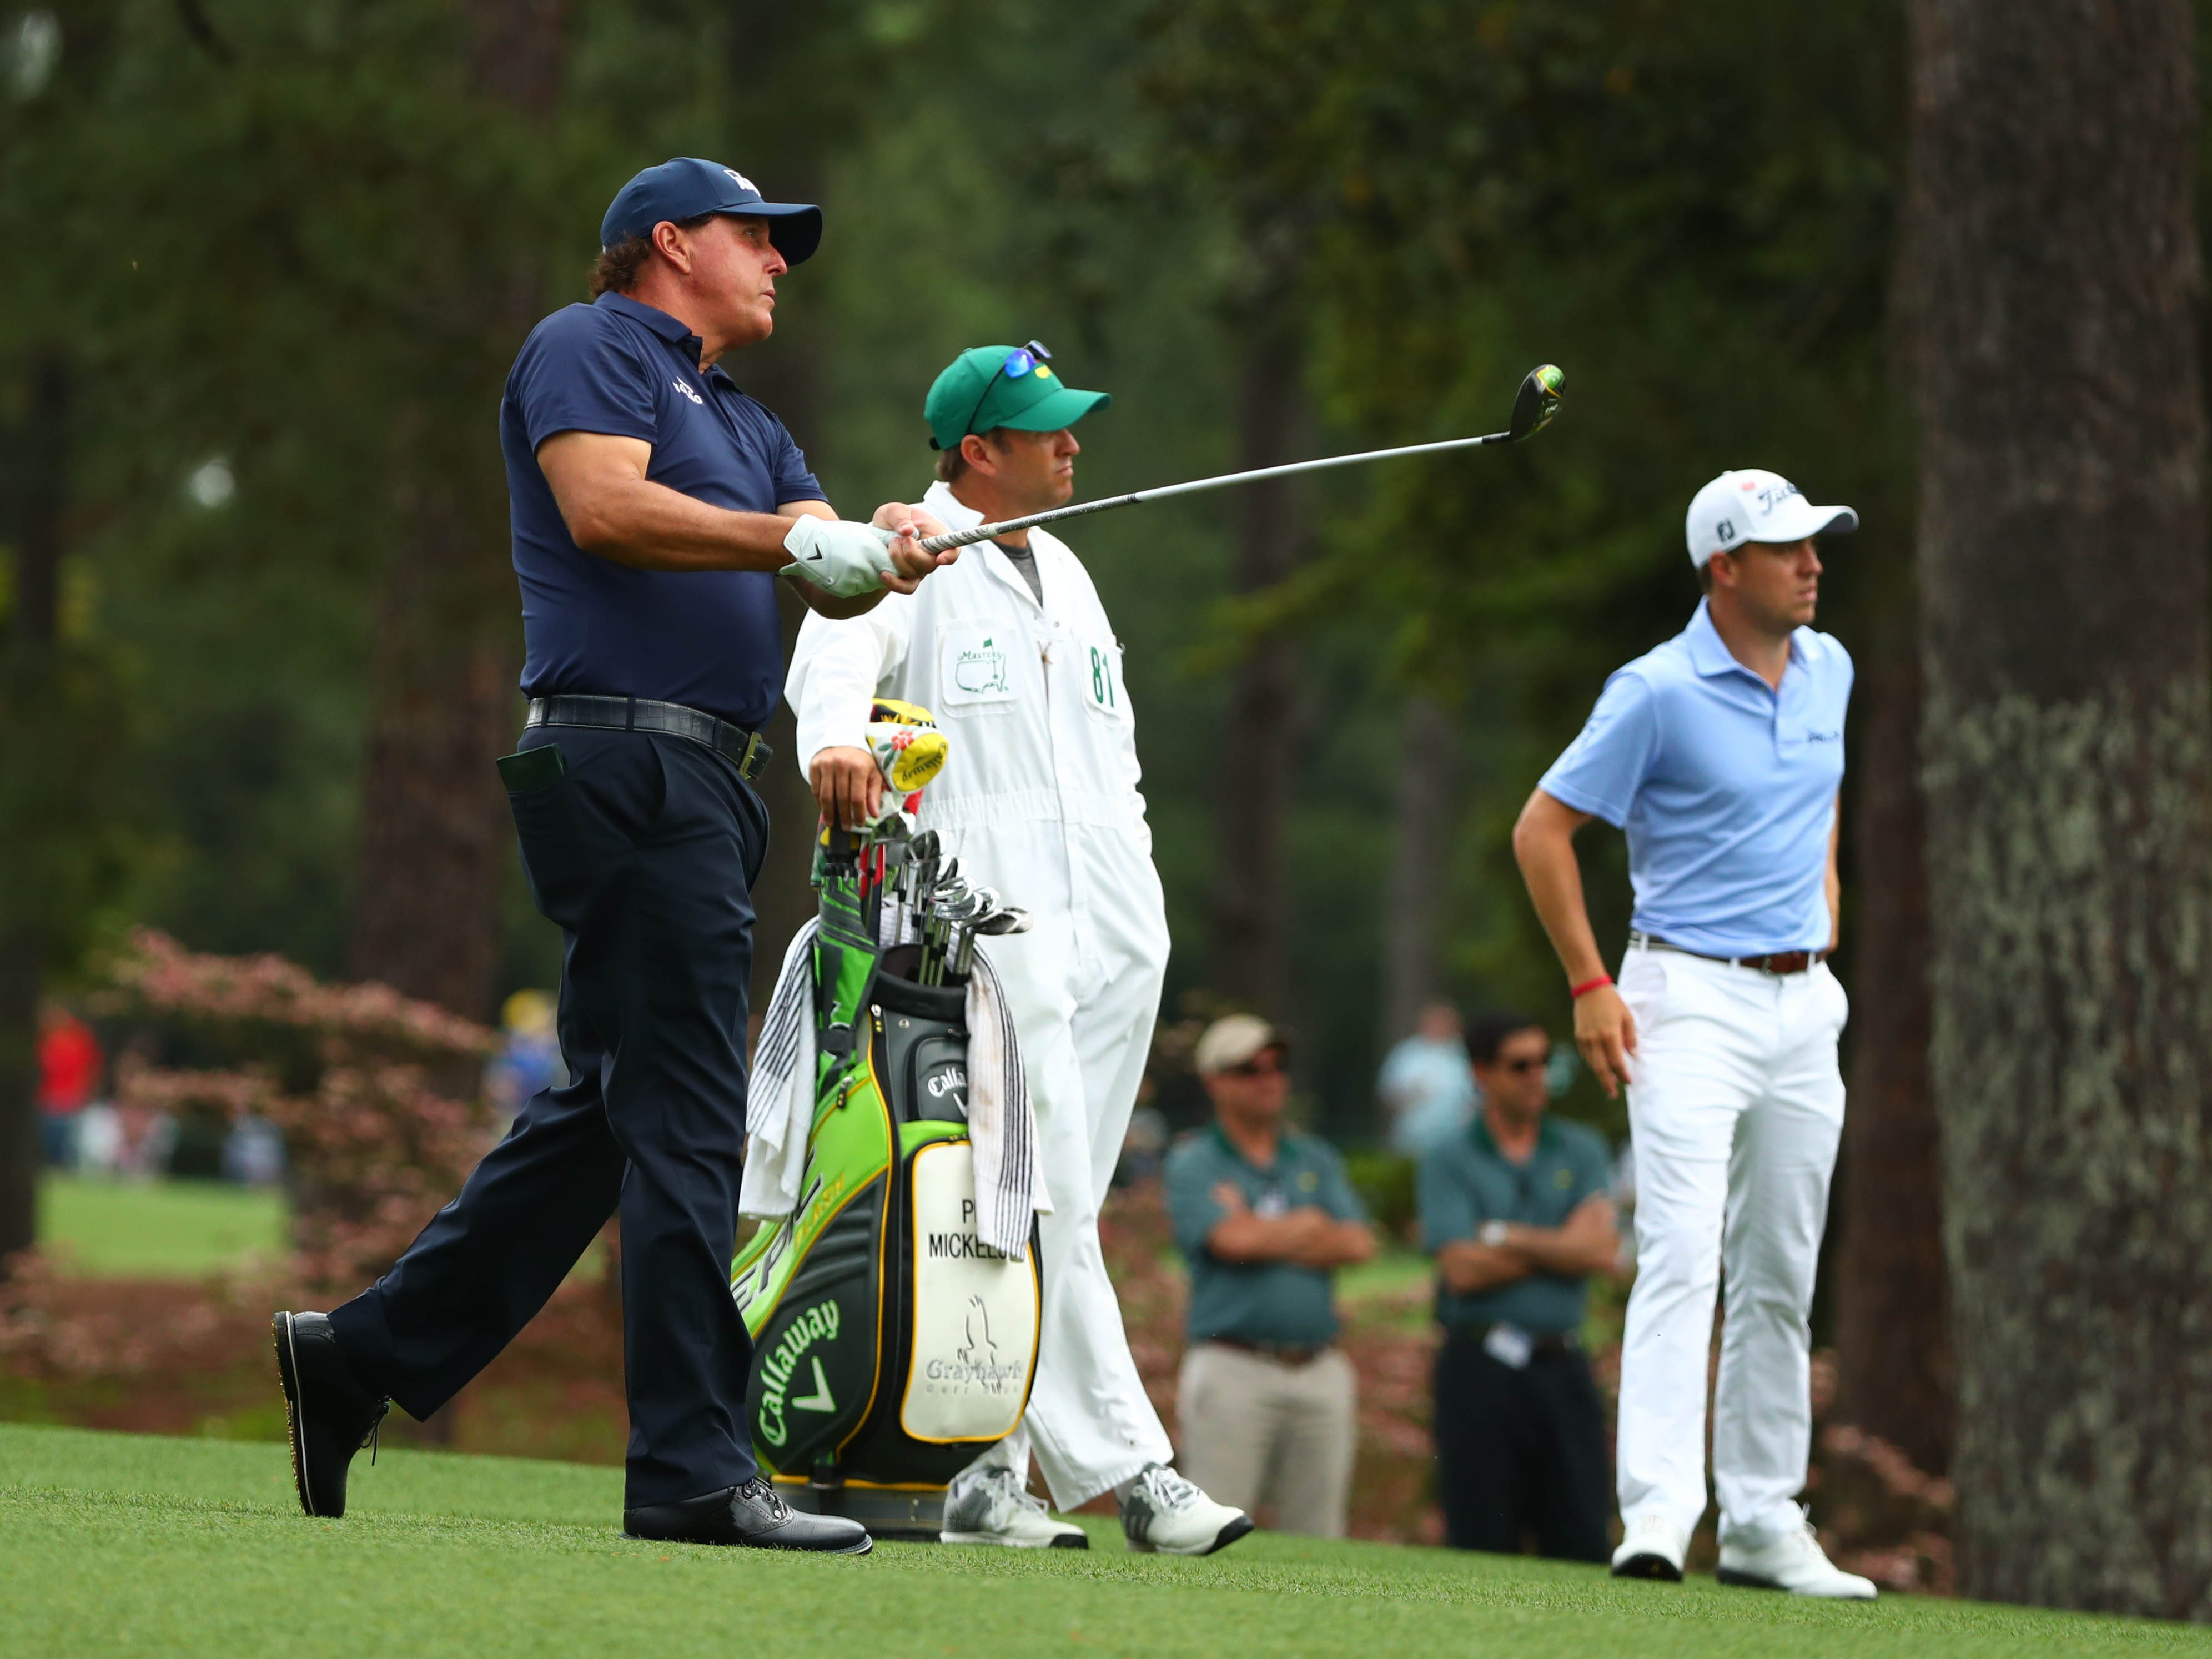 Apr 12, 2019; Augusta, GA, USA; Phil Mickelson hits from the fairway on the 2nd hole during the second round of The Masters golf tournament at Augusta National Golf Club. Mandatory Credit: Rob Schumacher-USA TODAY Sports